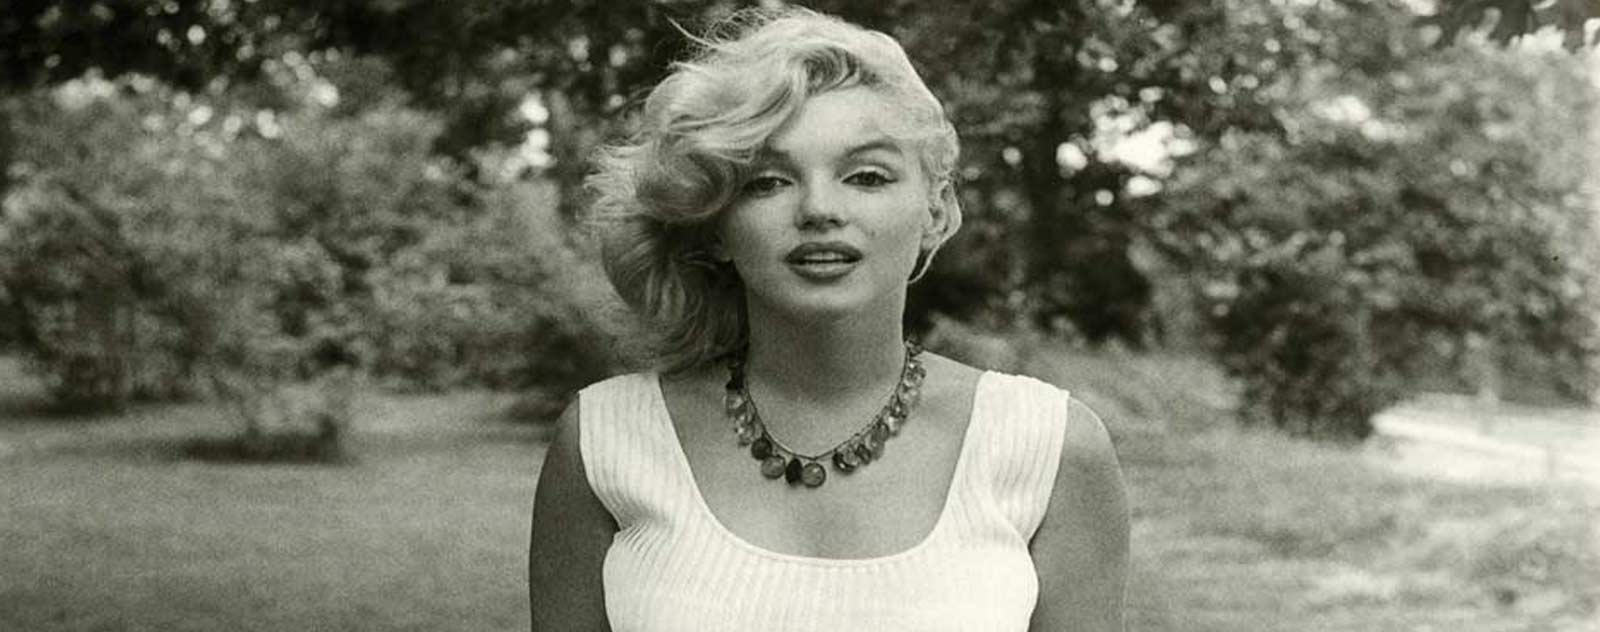 marilyn monroe sam shaw photographe